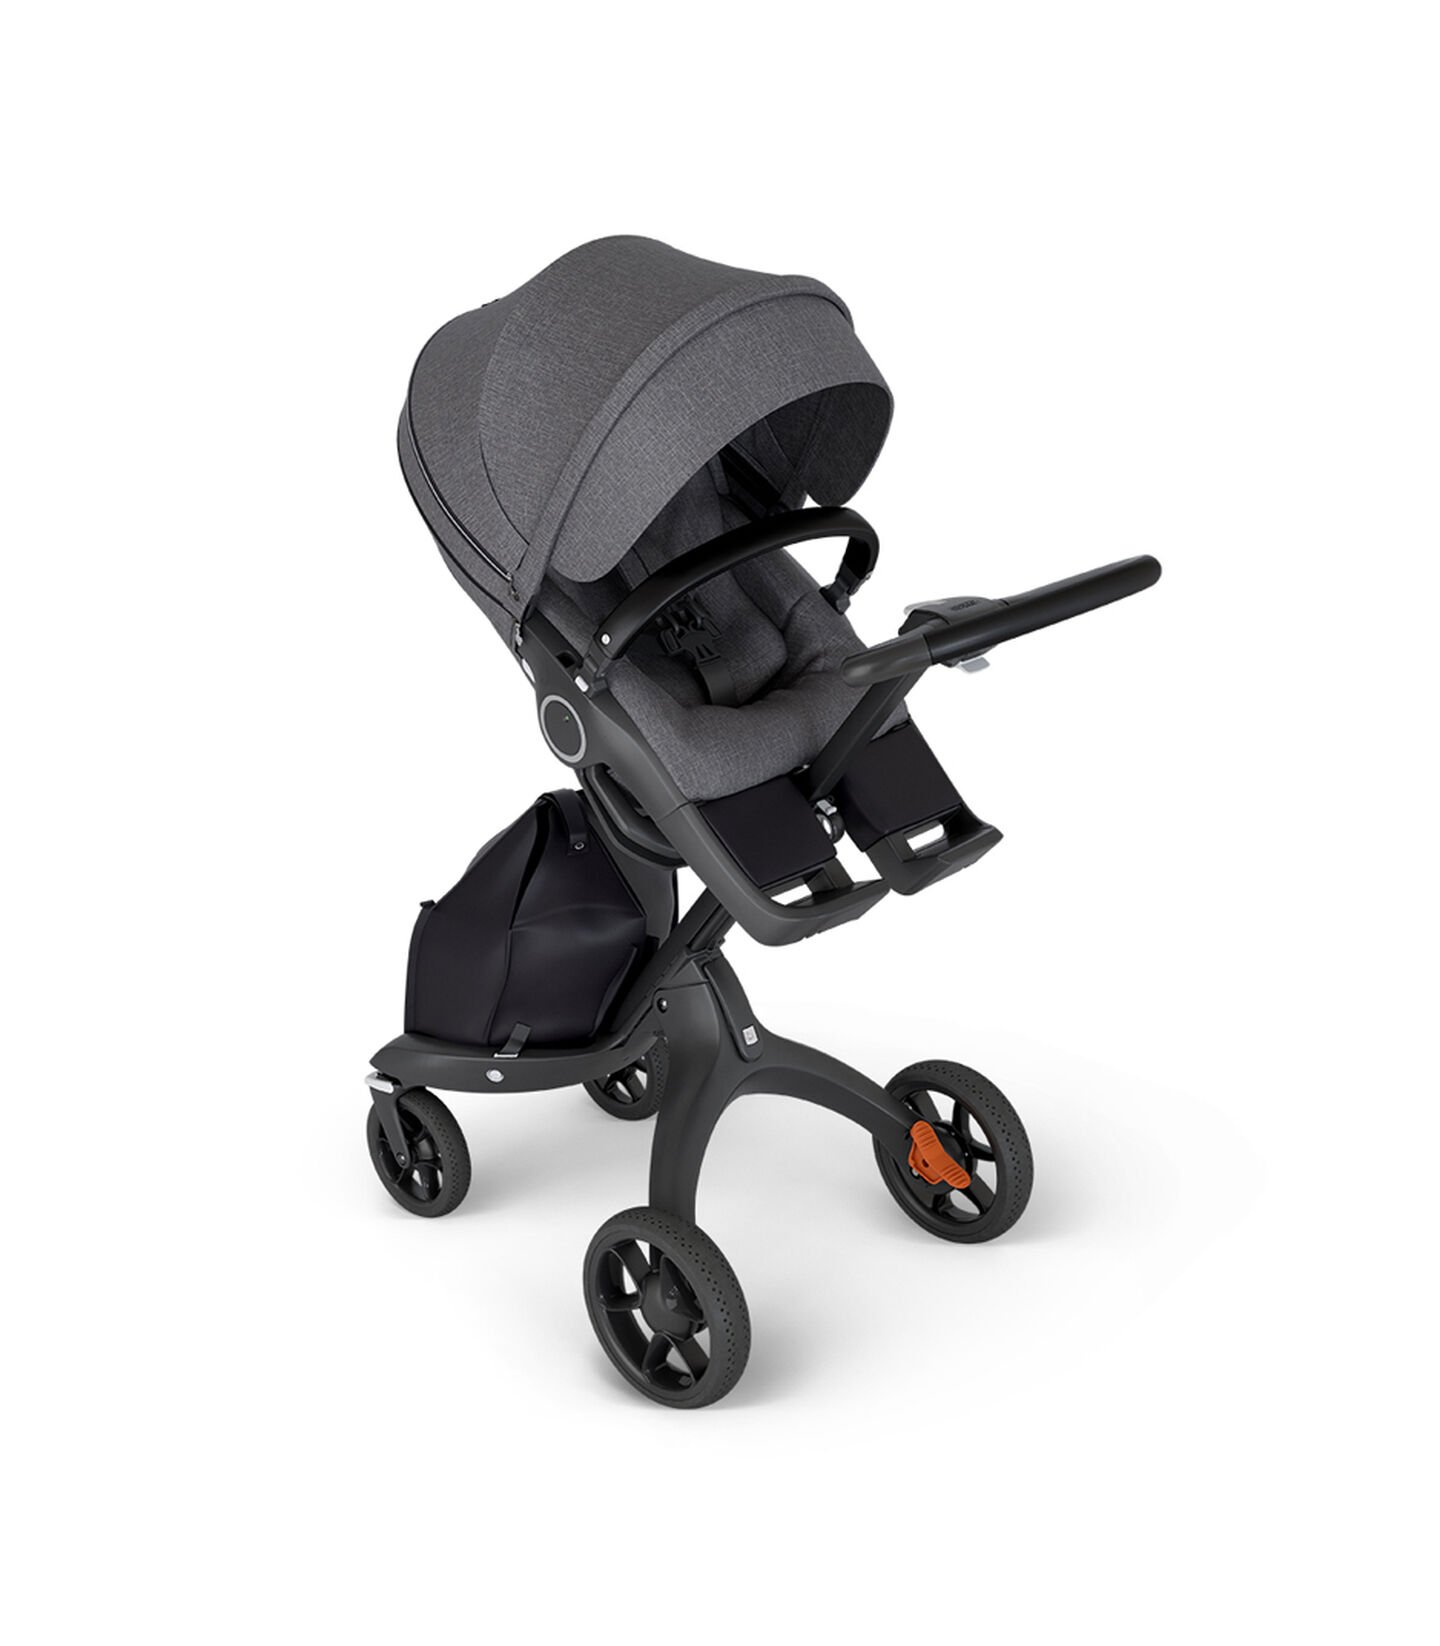 Stokke® Xplory® with Black Chassis and Leatherette Black handle. Stokke® Stroller Seat Black Melange in angled view.